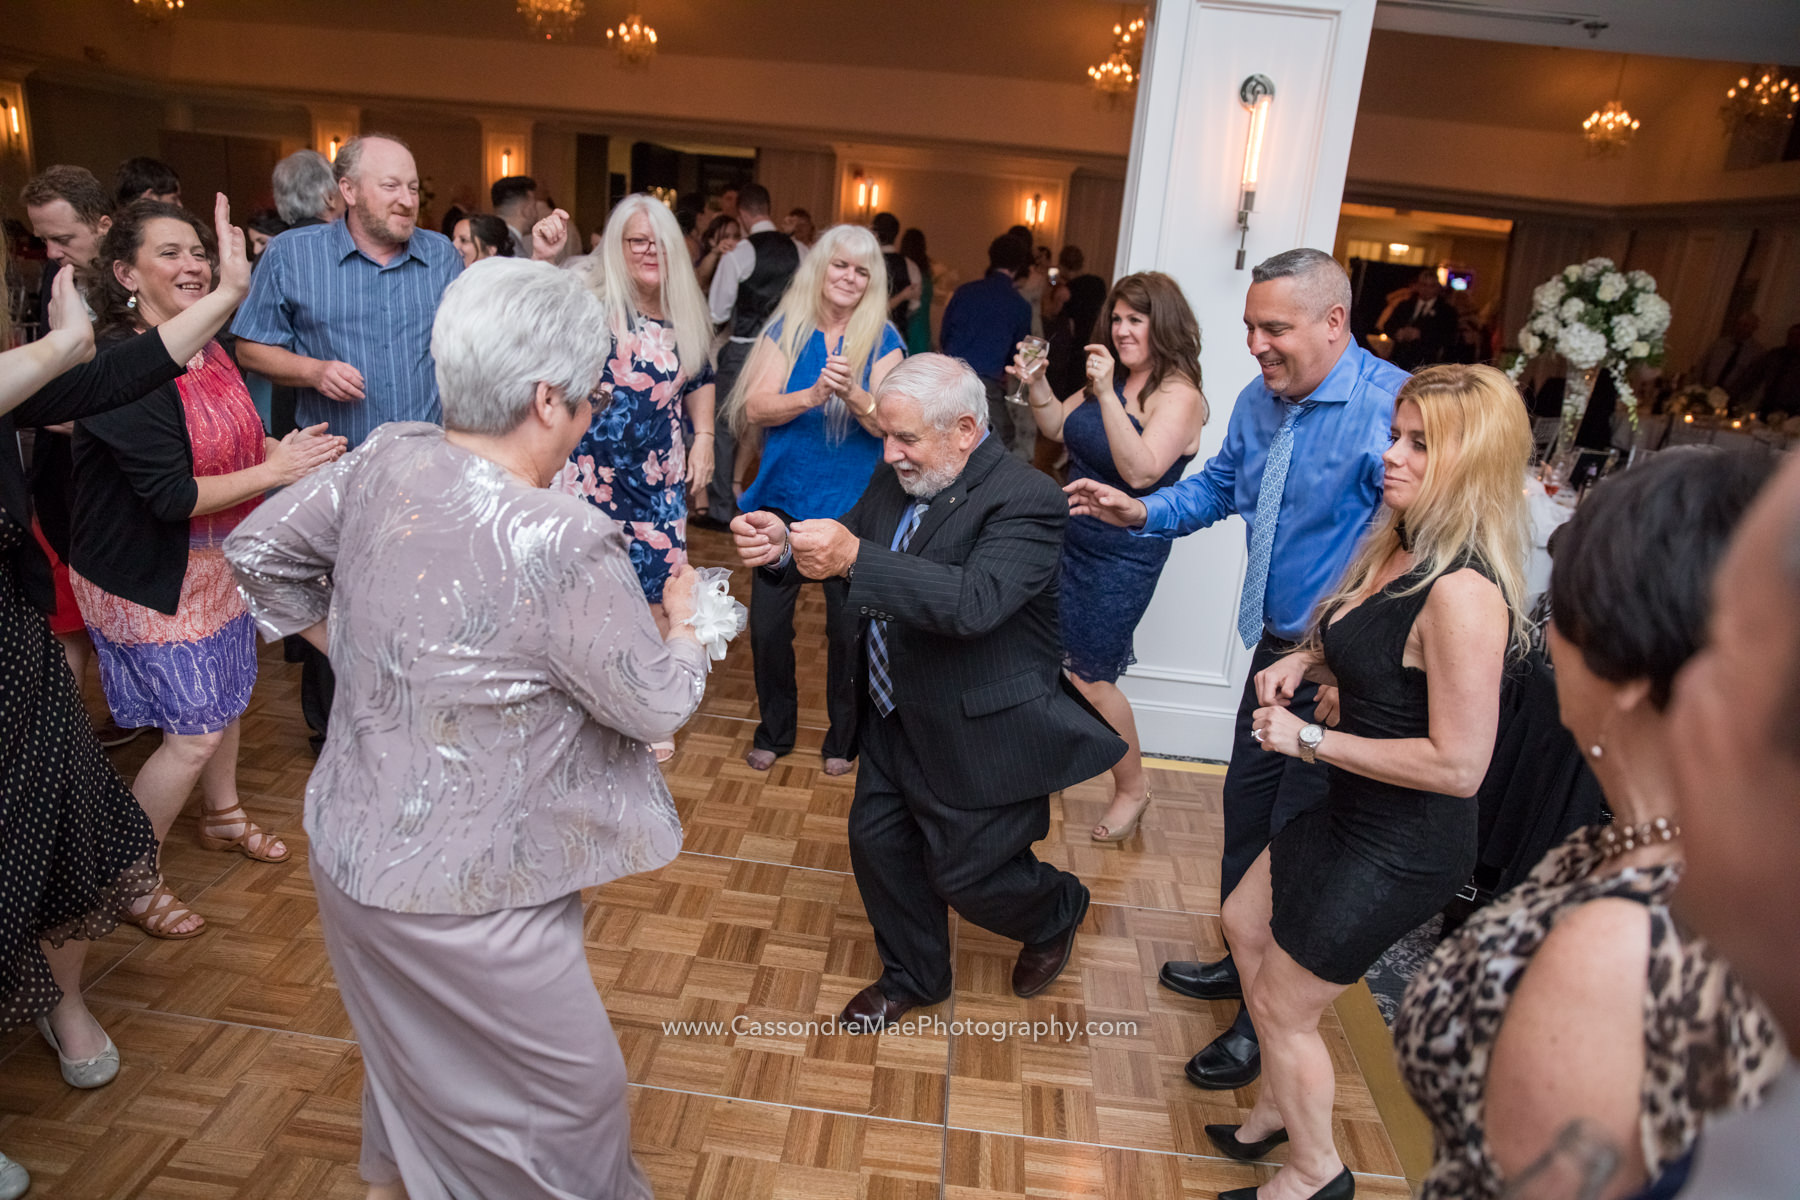 Senior citizen dancing